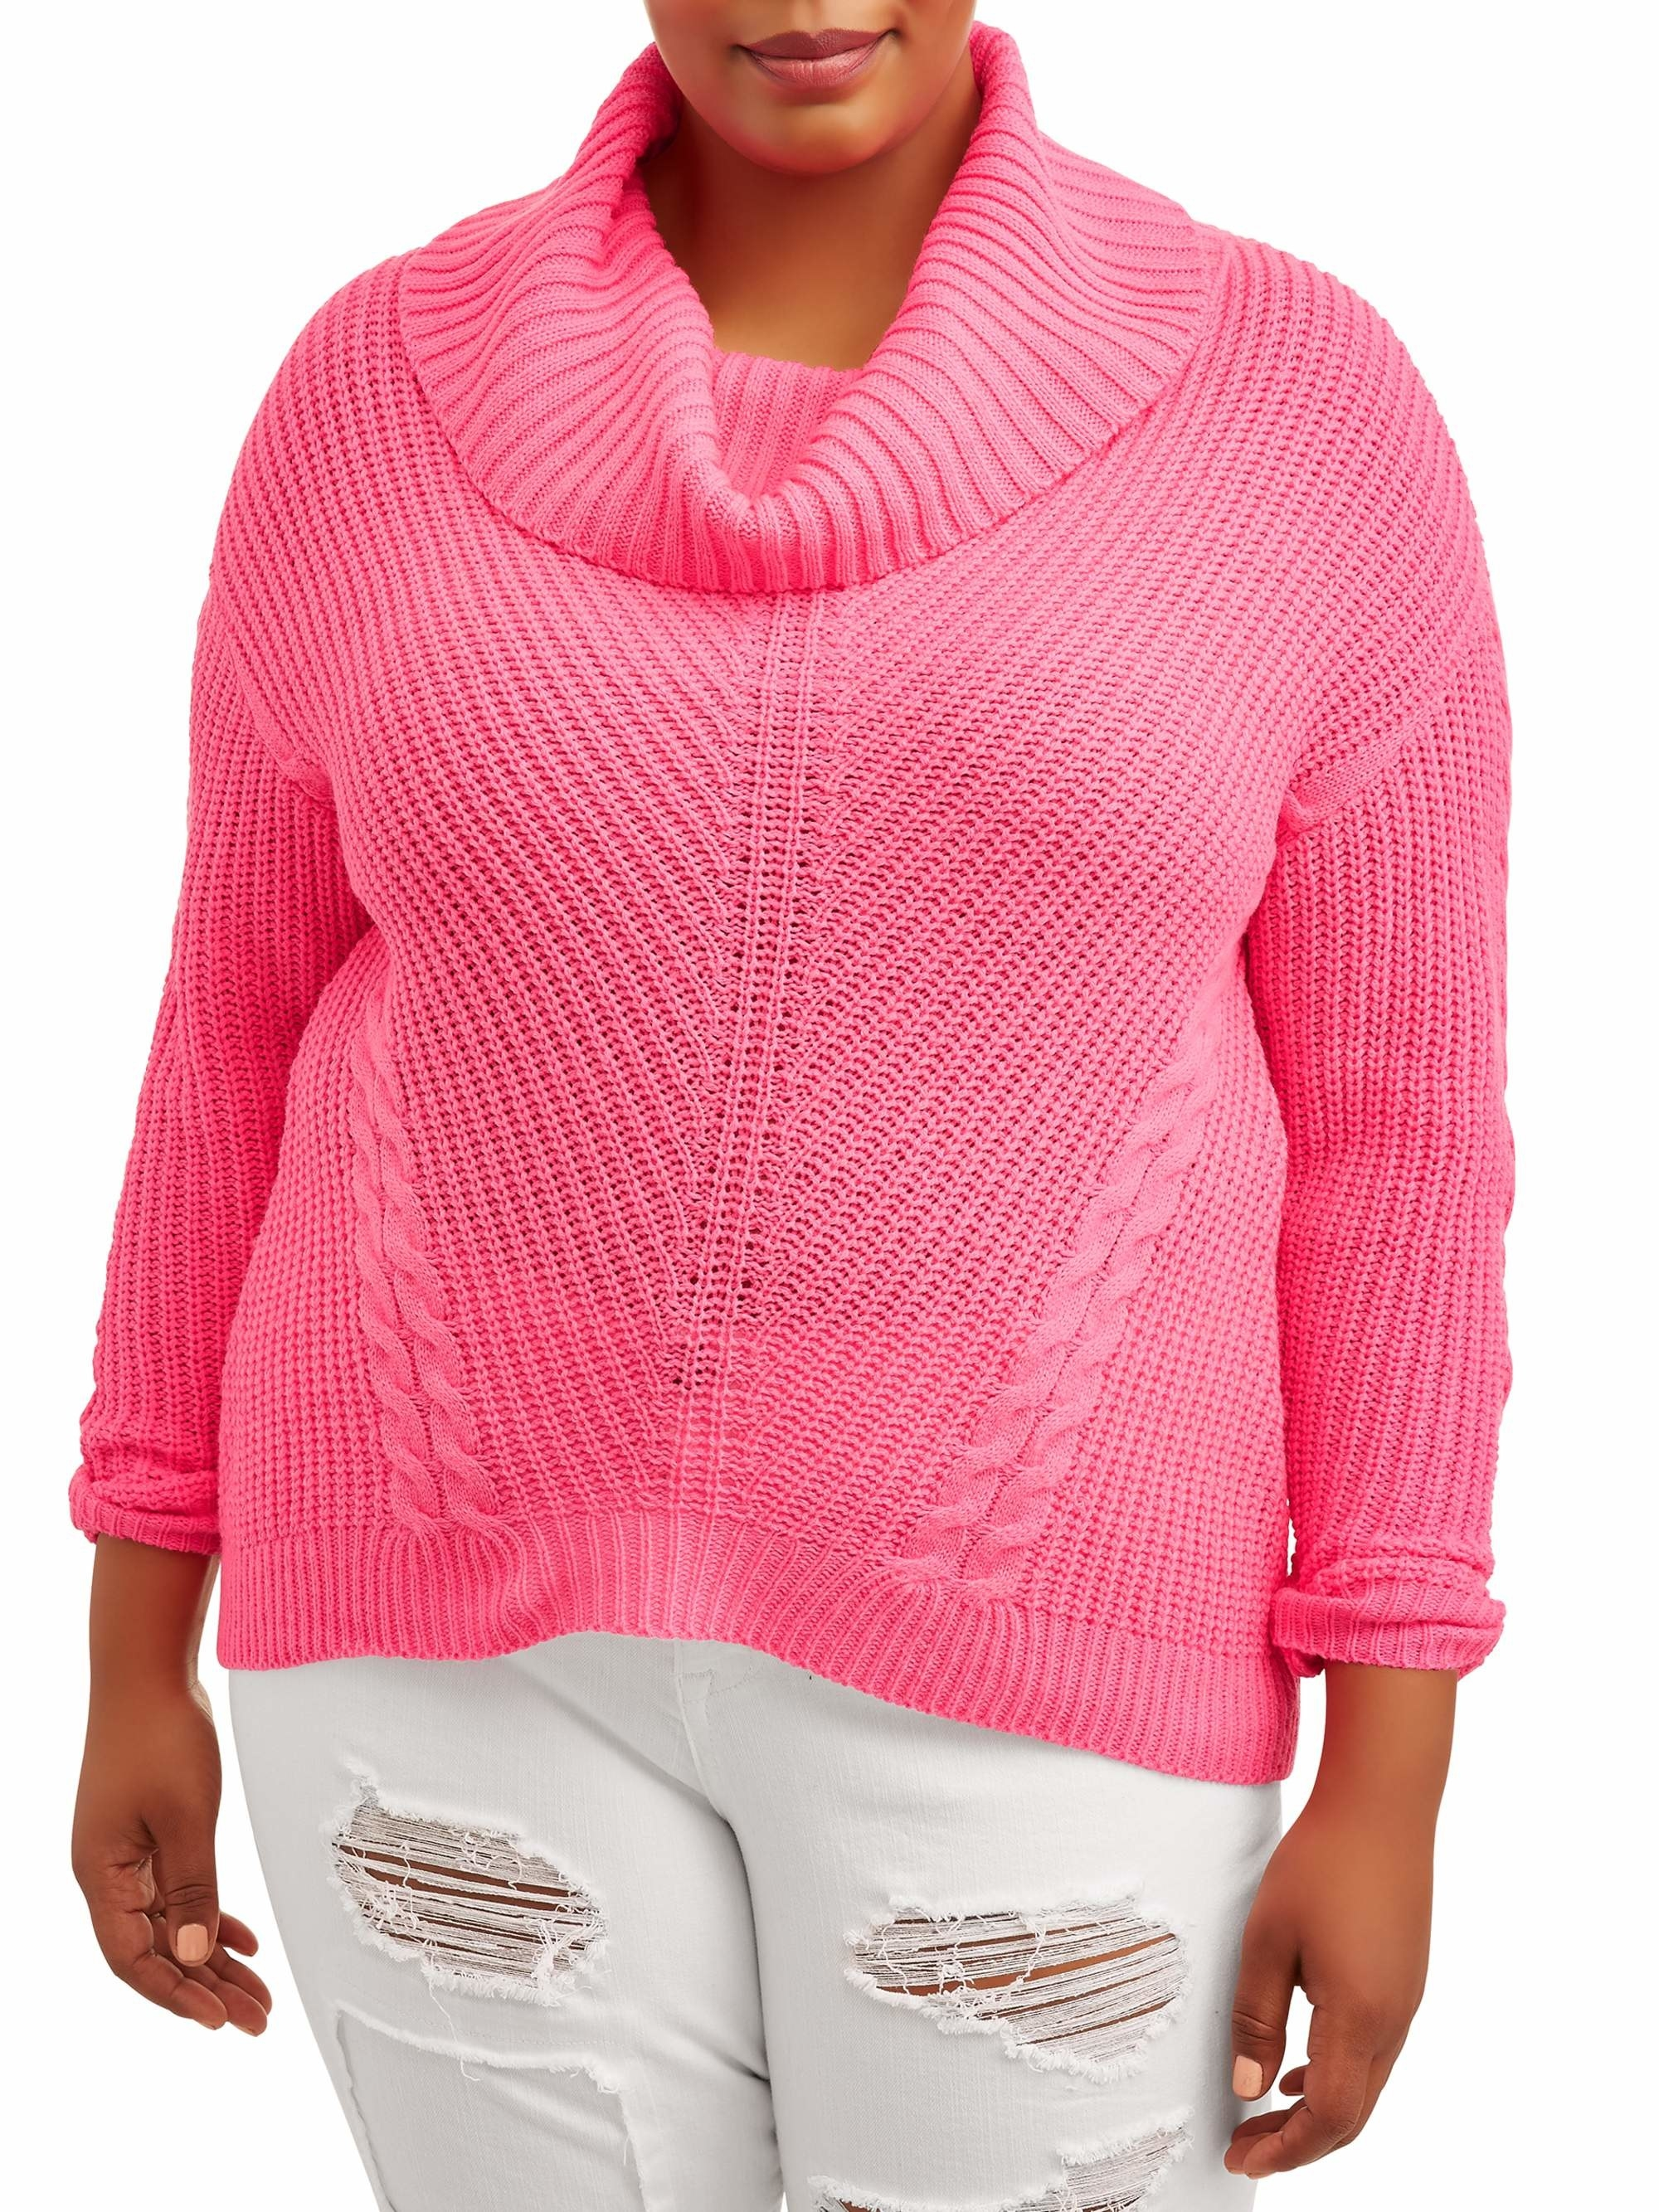 the sweater in bright pink